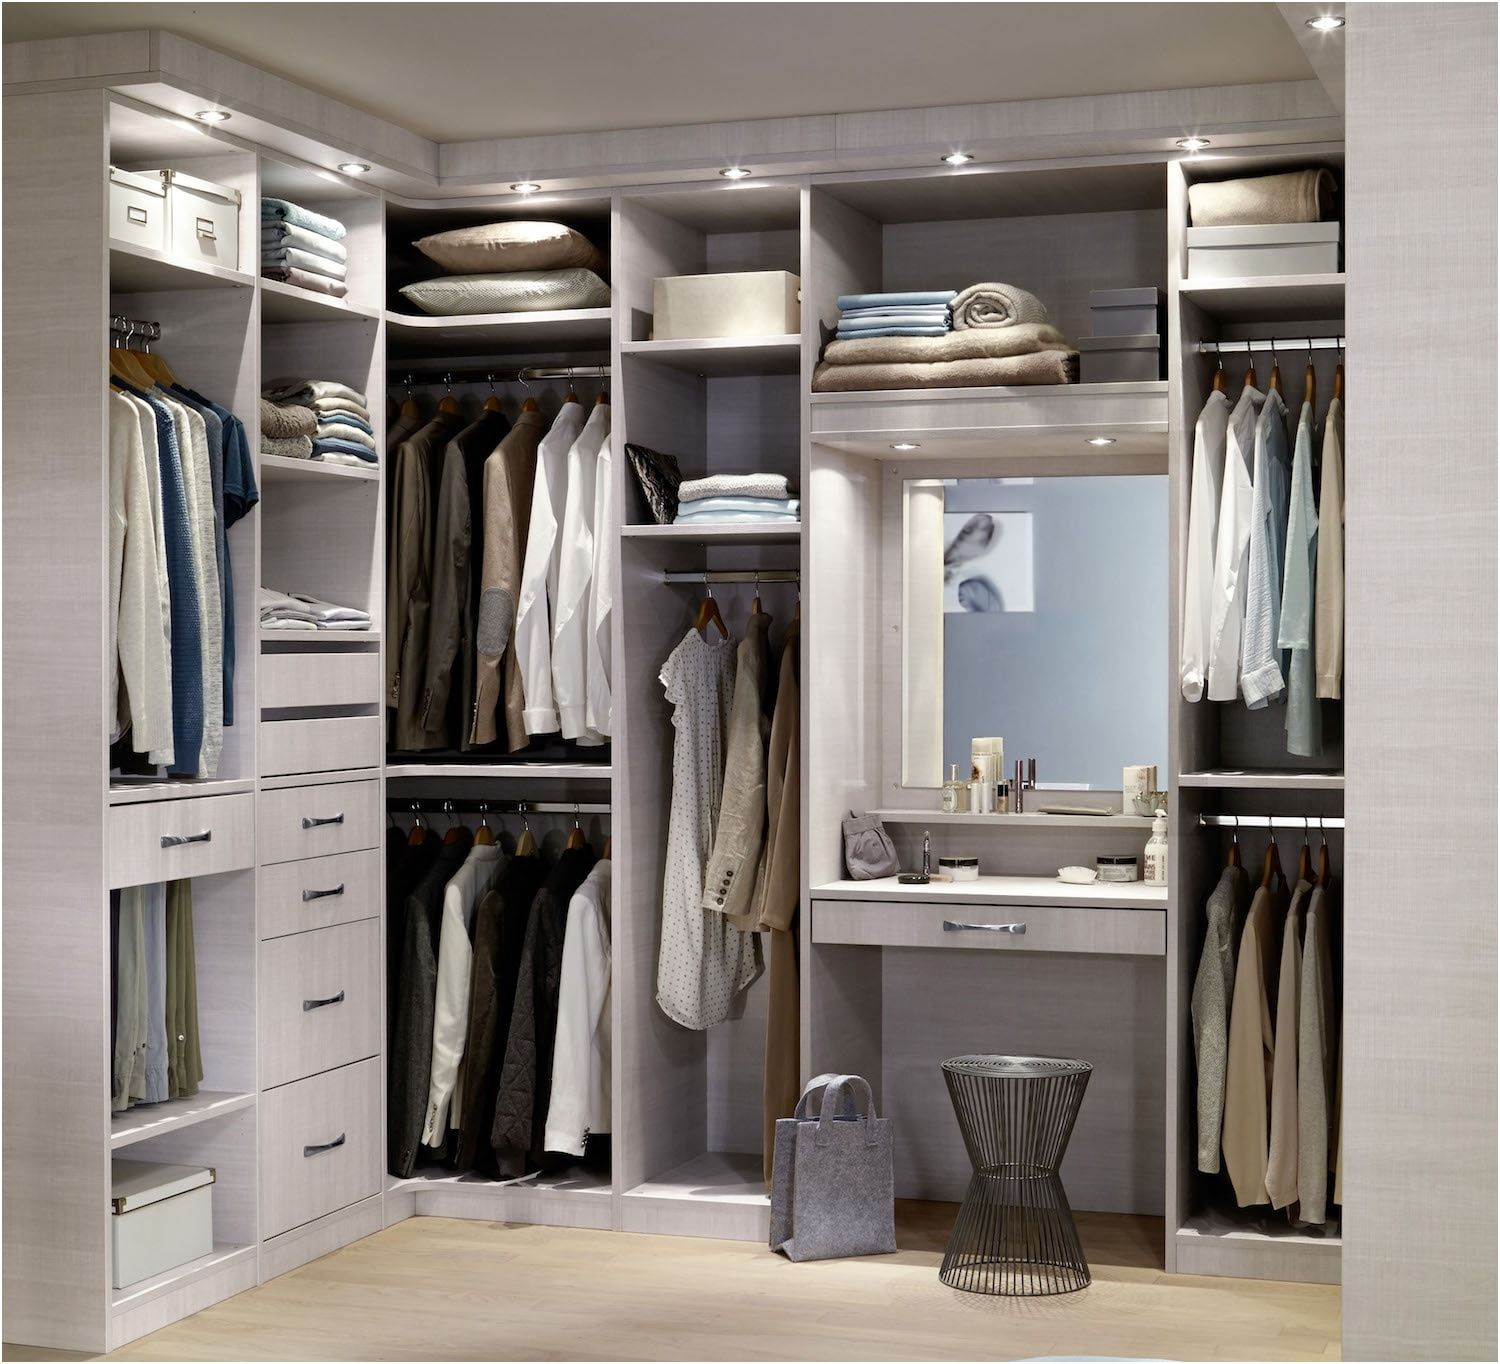 Ikea Dressing Angle 15 Complexe Dressing Angle Pas Cher Meuble Di 2018 Pinterest